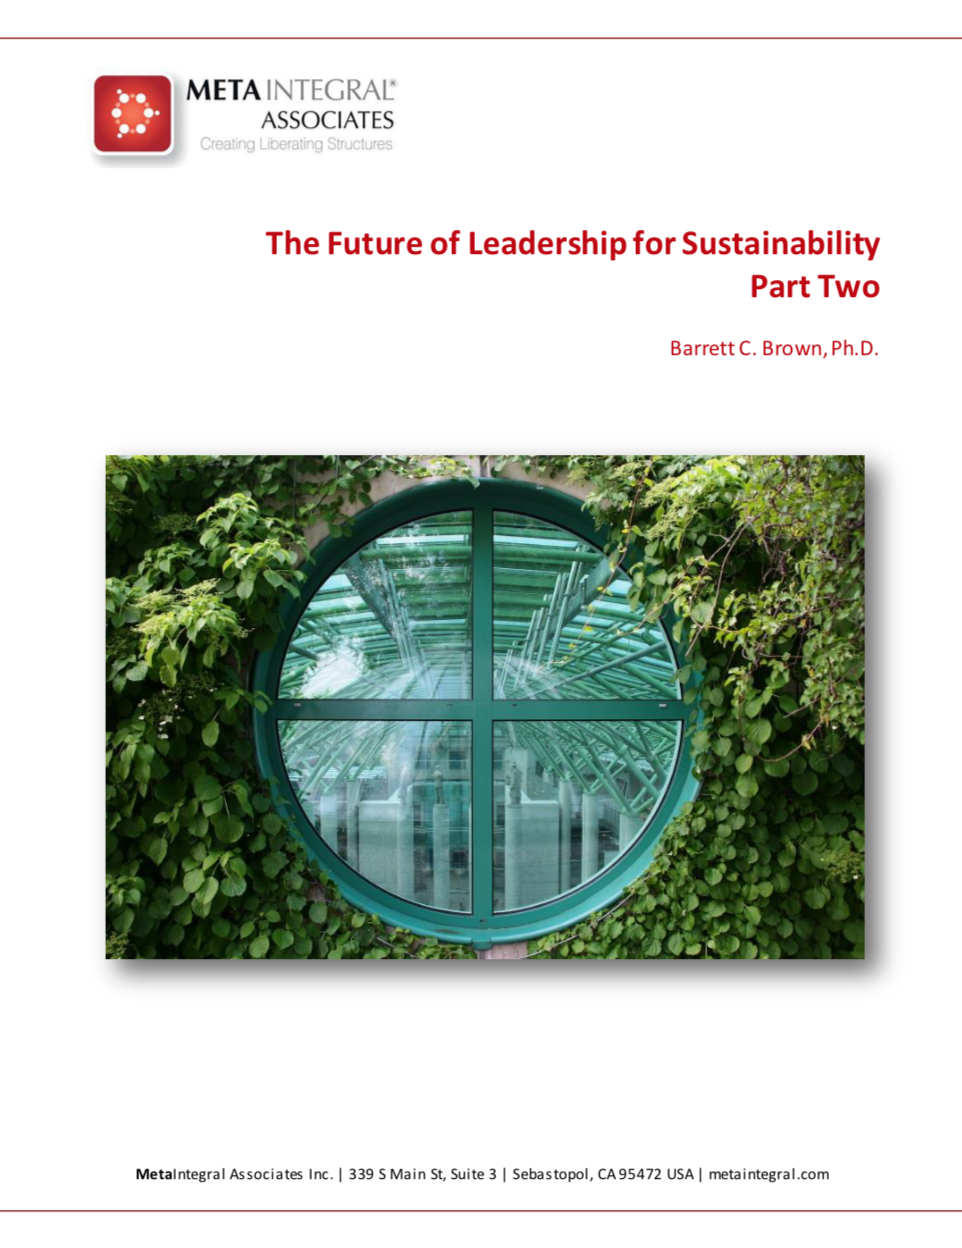 The future of leadership for sustainability - part 2 - This part of the article describes high-impact sustainability leaders who have cultivated advanced capacities of mind and heart, lighting the way for the rest of us.